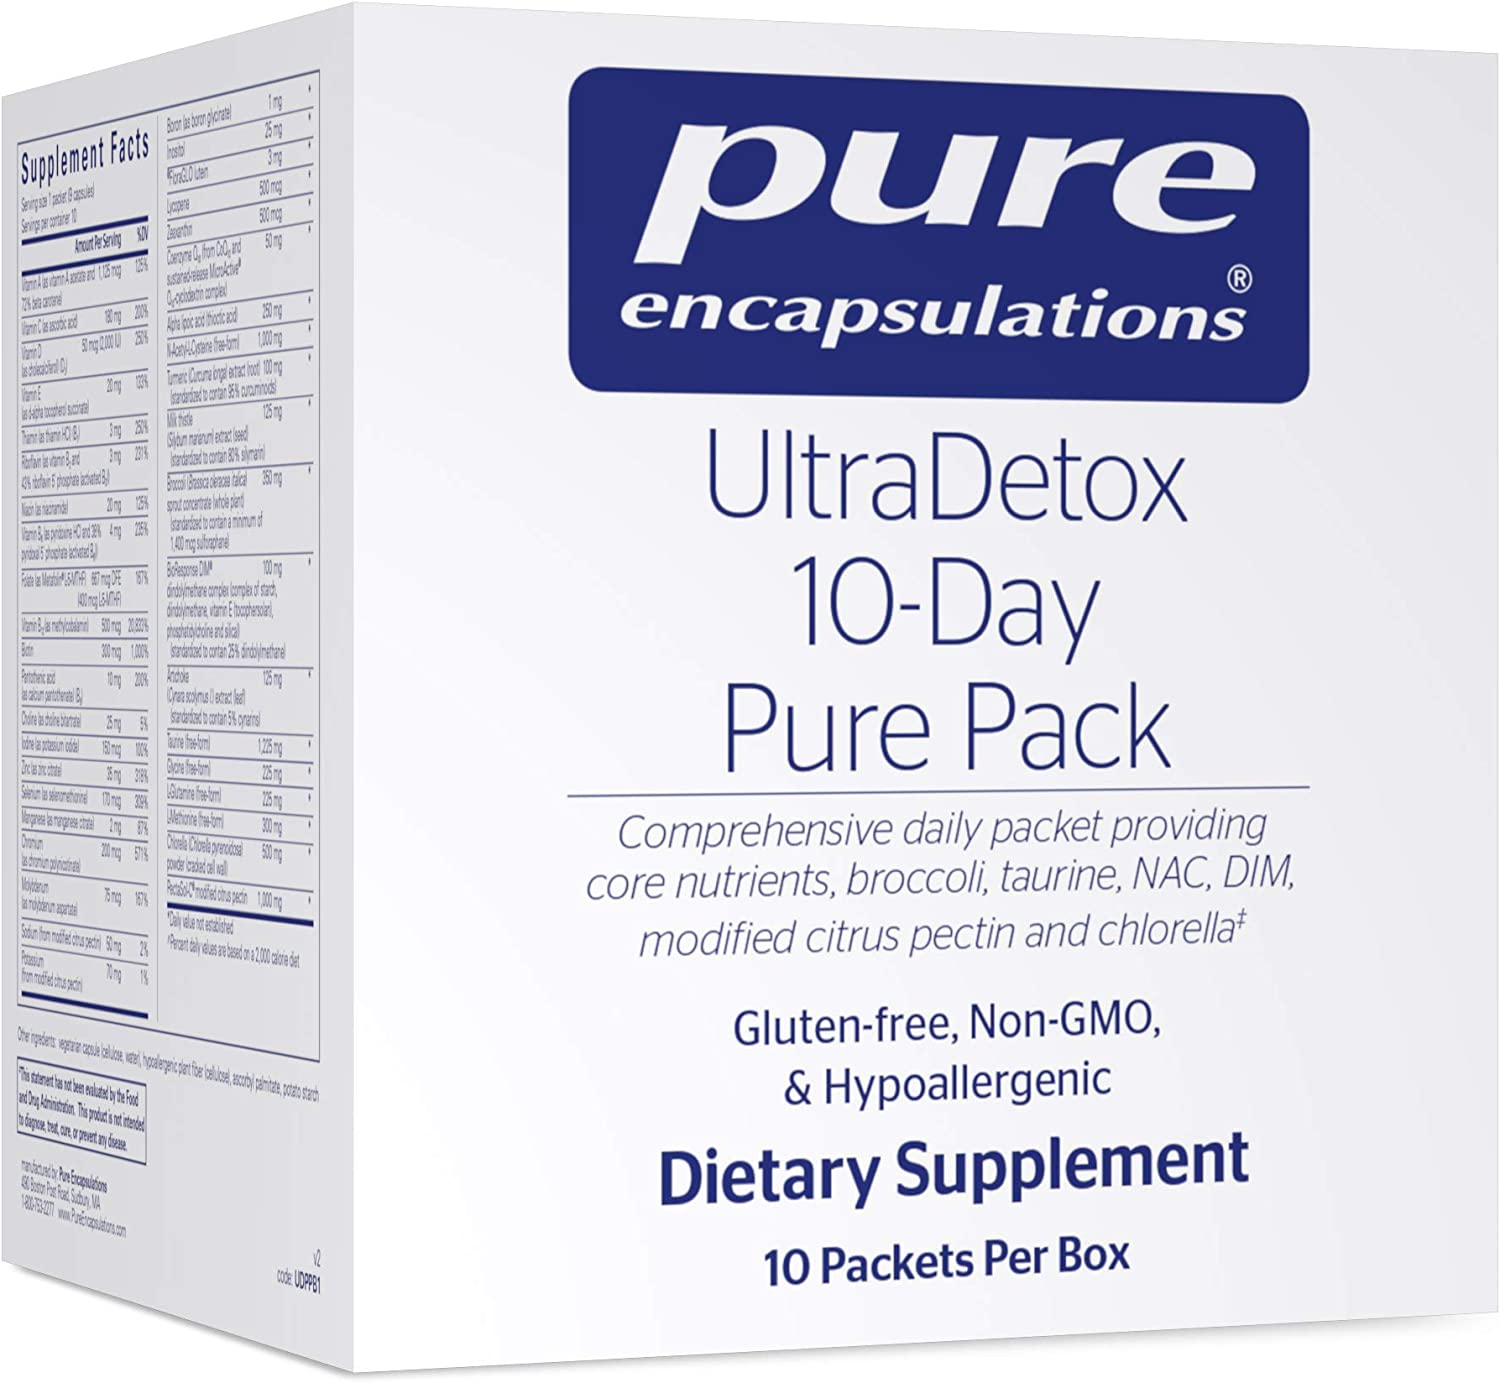 Pure Encapsulations - UltraDetox 10-Day Pure Pack Providing Core Nutrients, Broccoli, Taurine, NAC, DIM, Modified Citrus Pectin and Chlorella* - 10 Packets